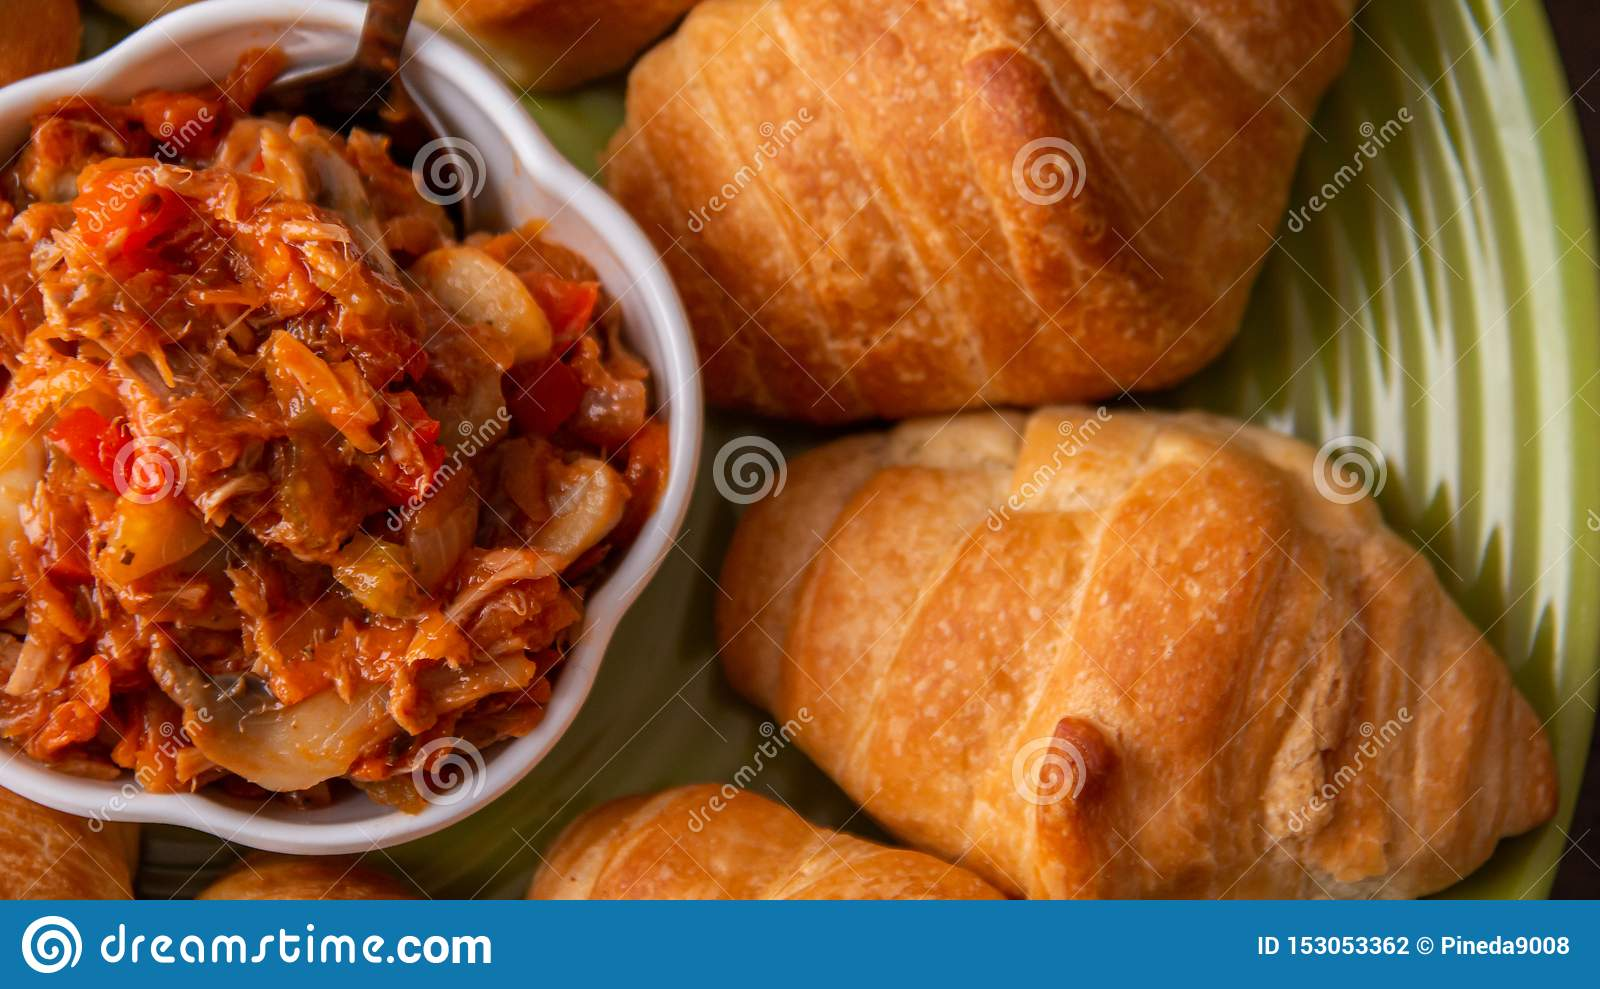 Pickled with bread